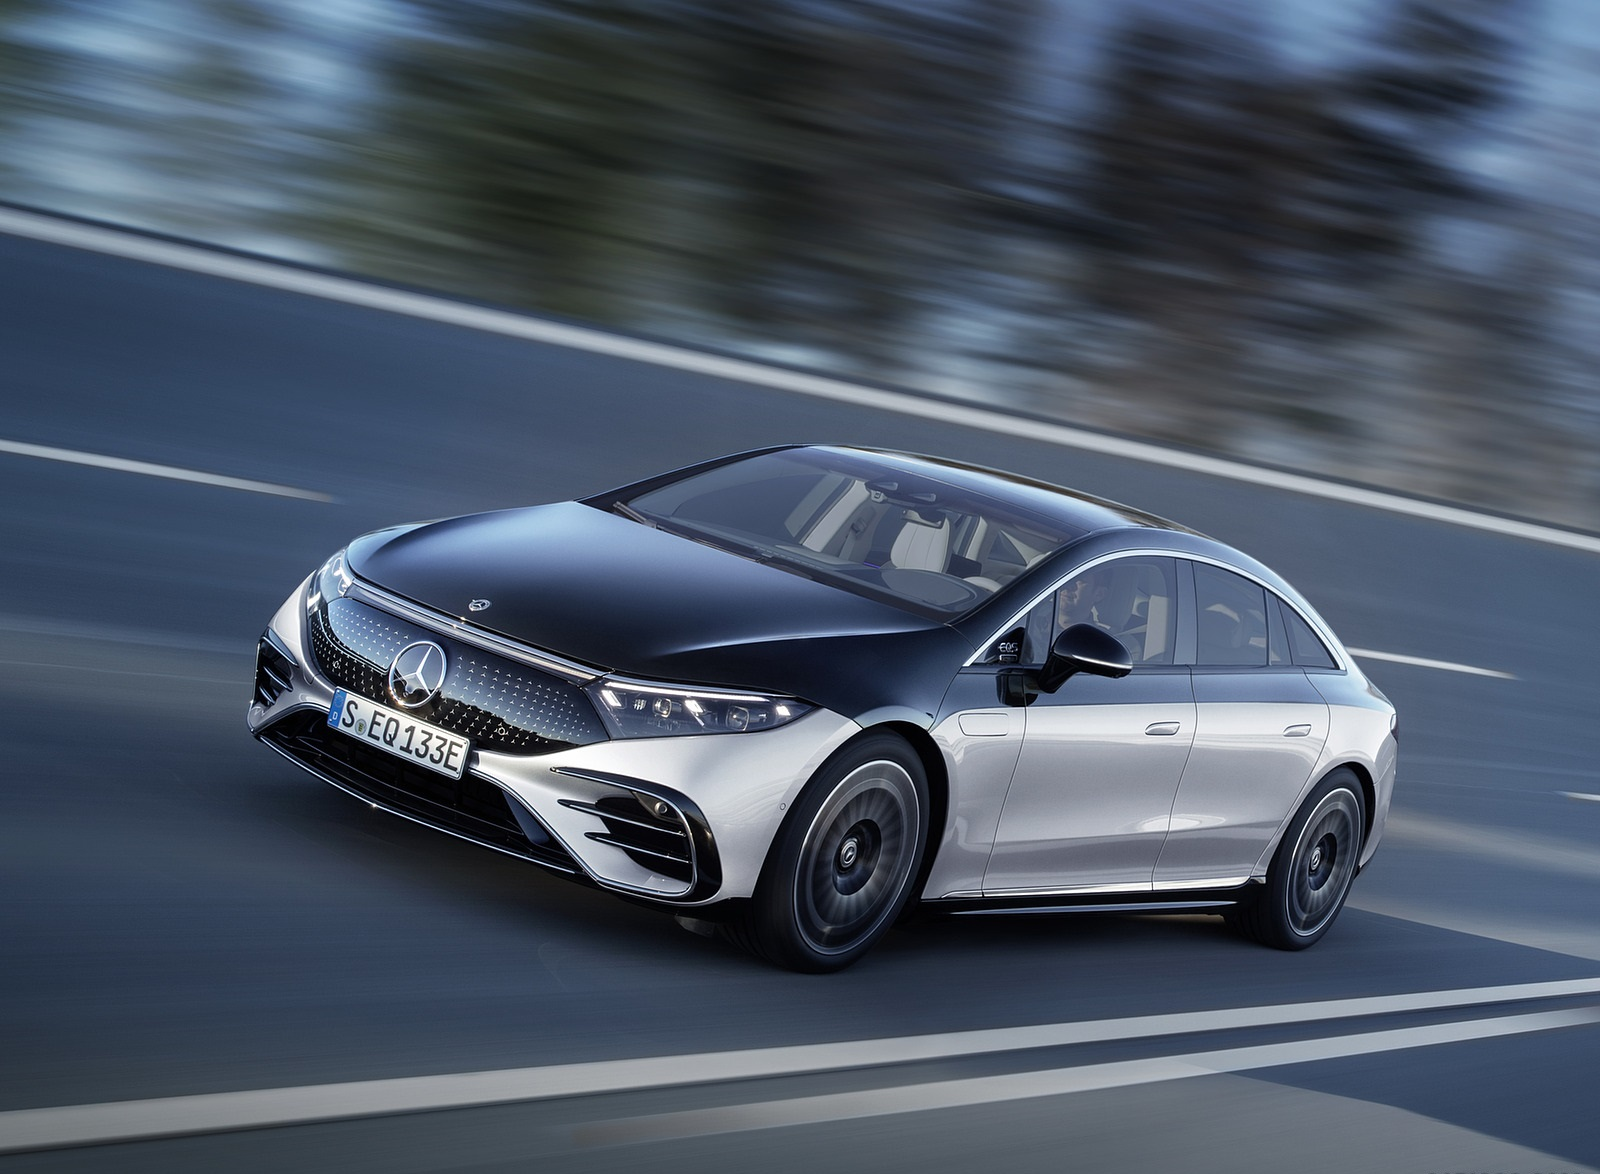 2022 Mercedes-Benz EQS 580 4MATIC AMG-Line Edition 1 (Color: High-Tech Silver Obsidian Black) Front Three-Quarter Wallpapers (1)